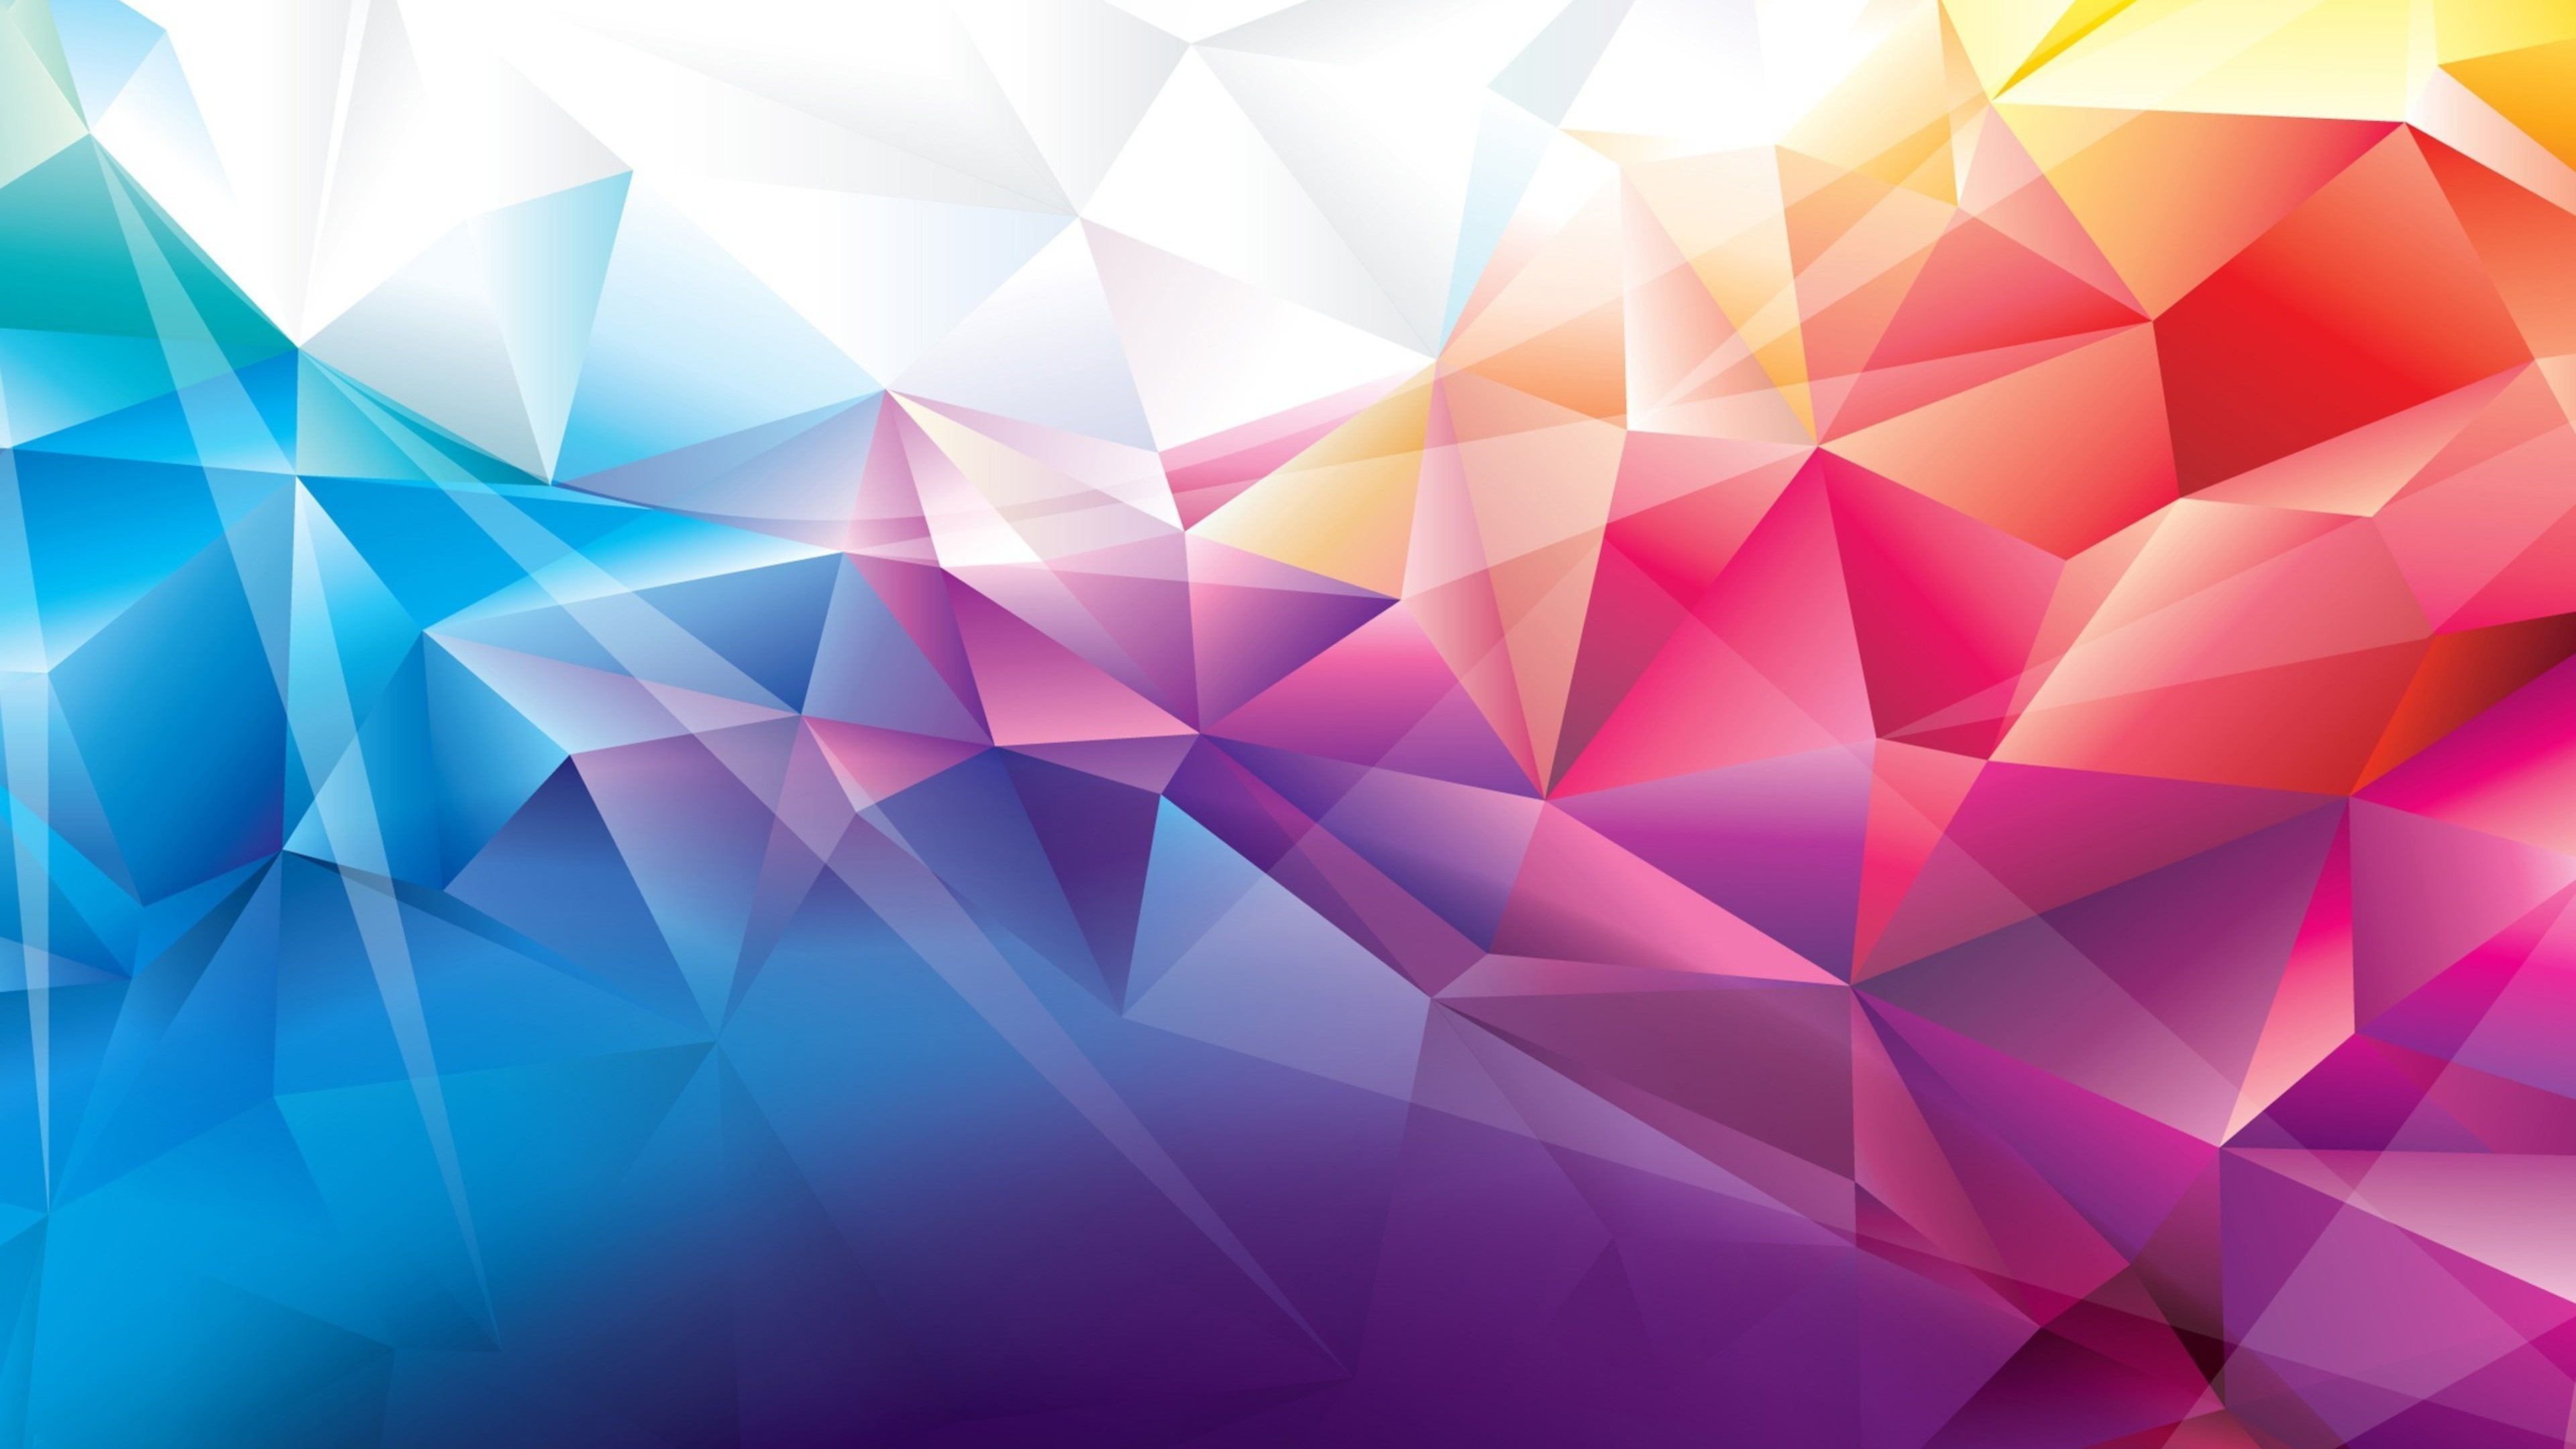 Cool 3d Ipad Wallpapers Hd Polygon Wallpapers 83 Images